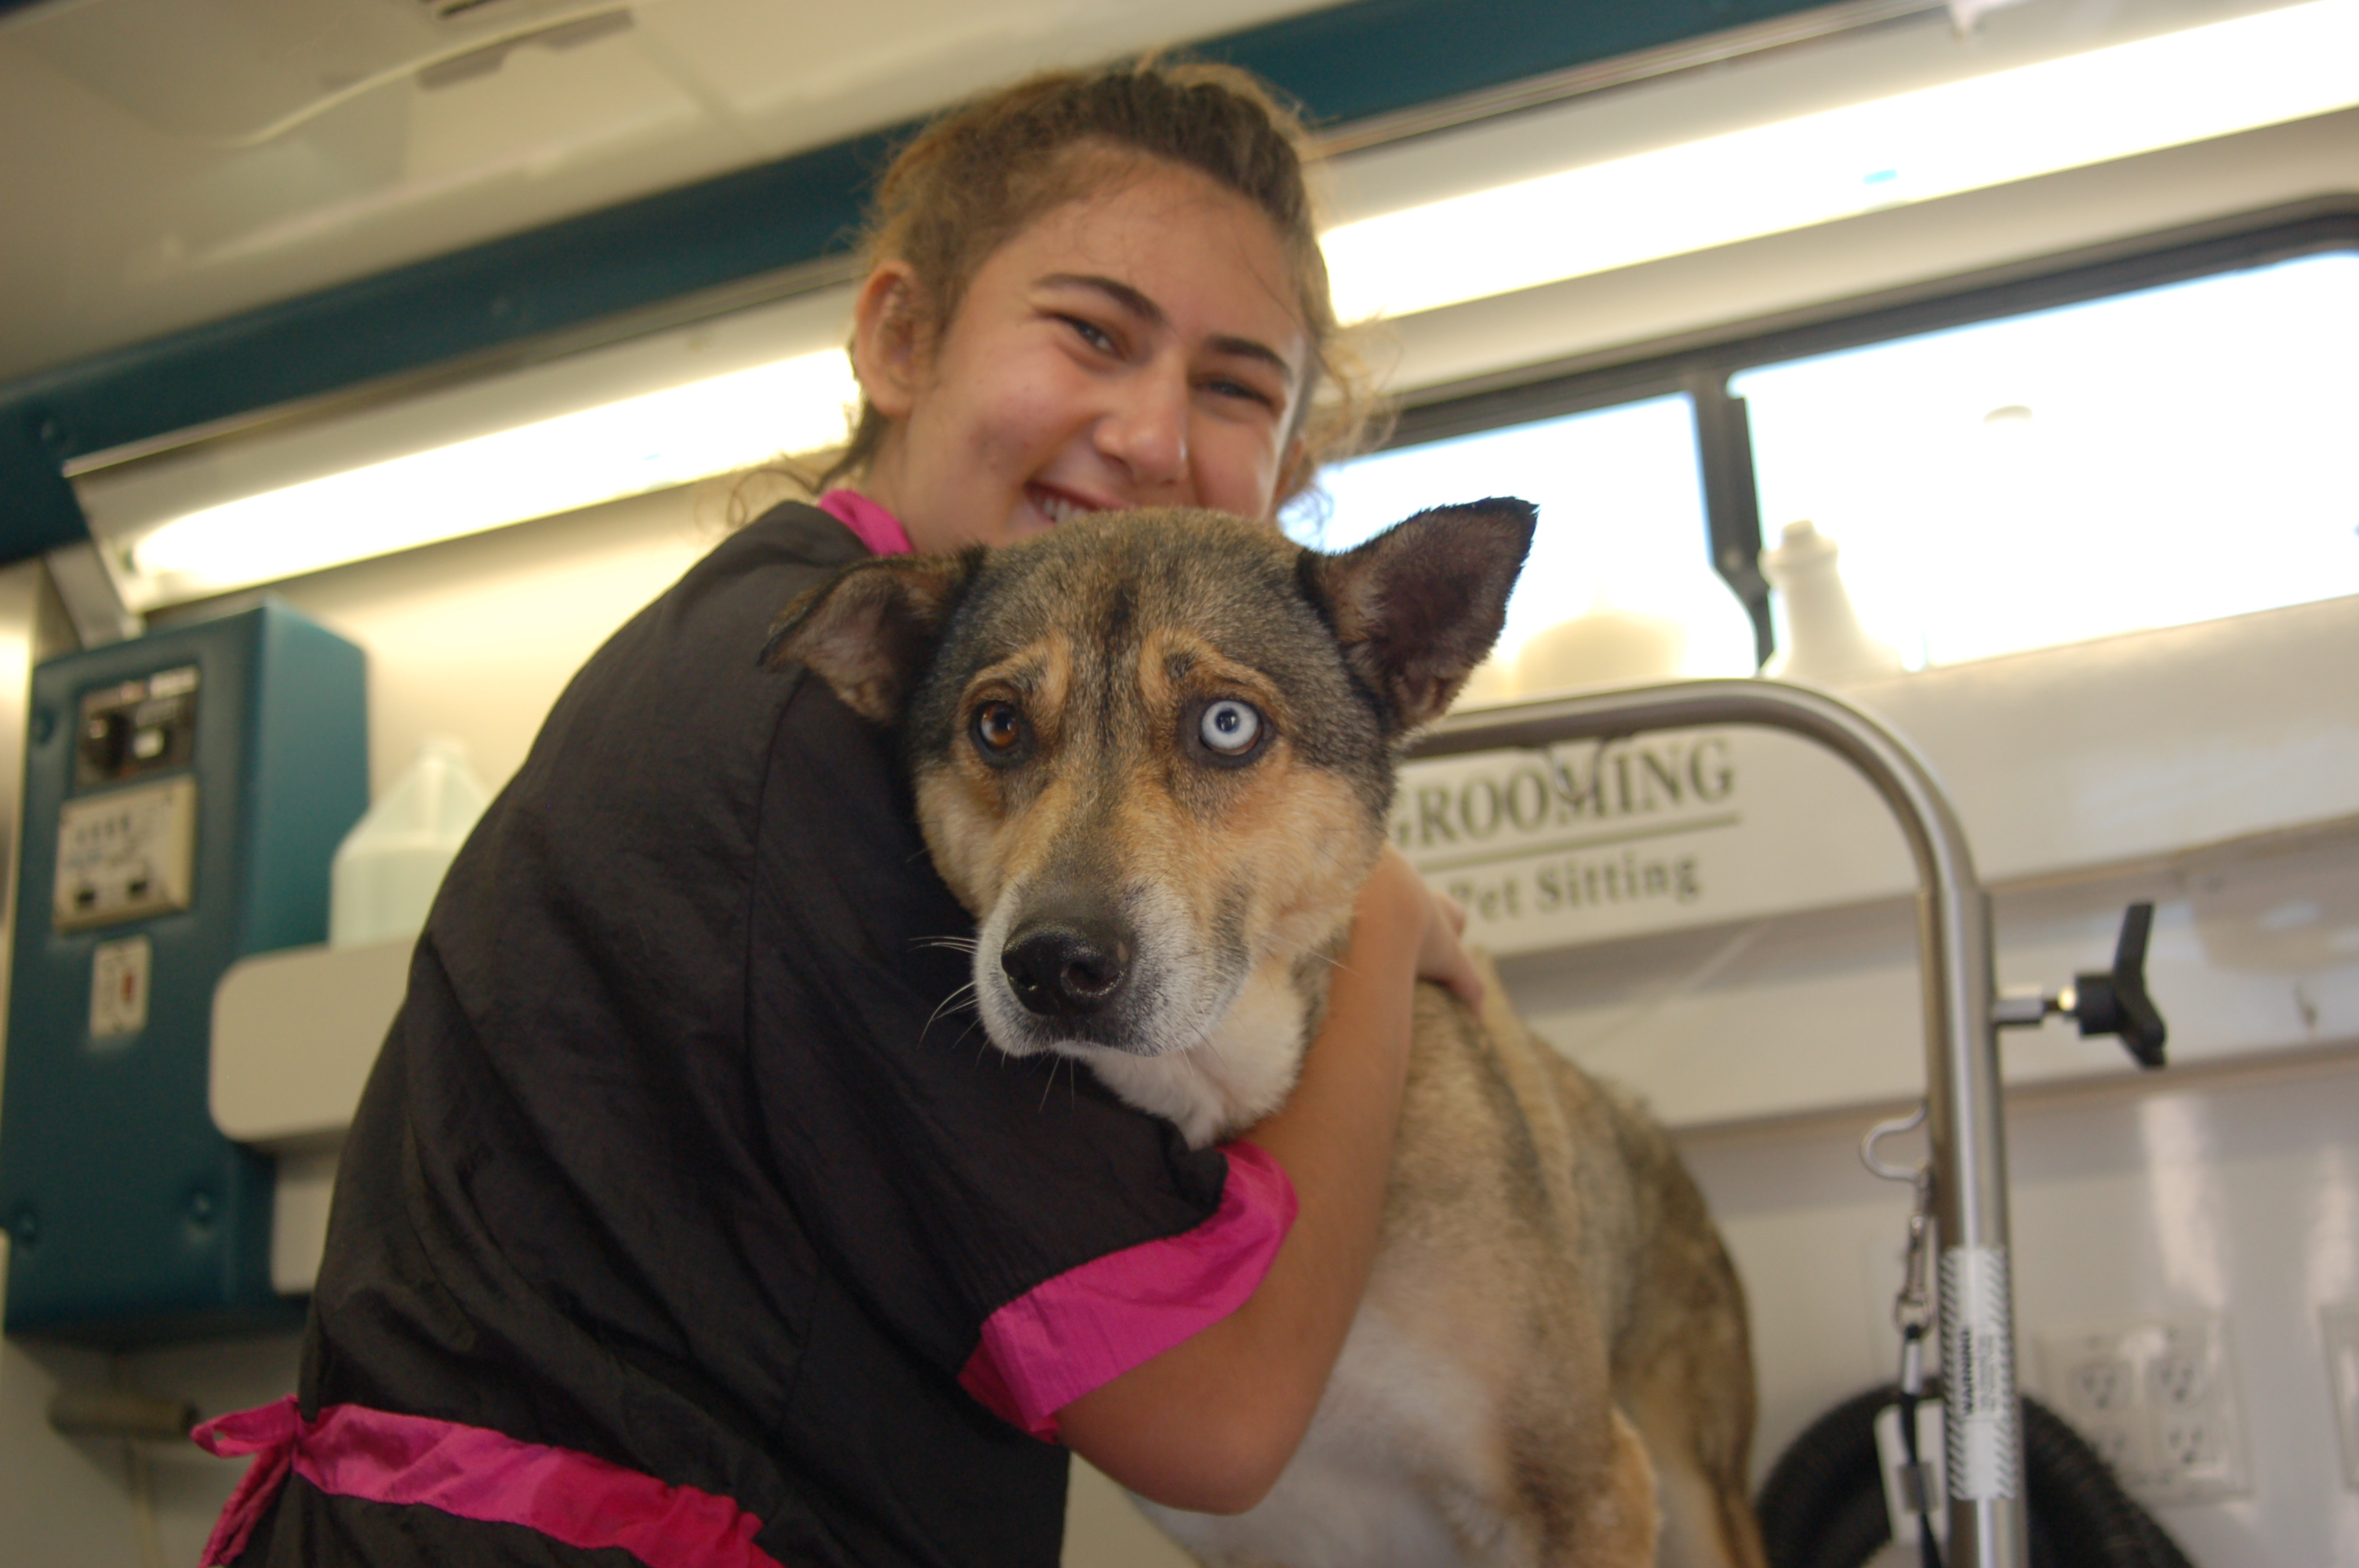 Dog Groomer Danielle hugs a dog at a Grooming Station.